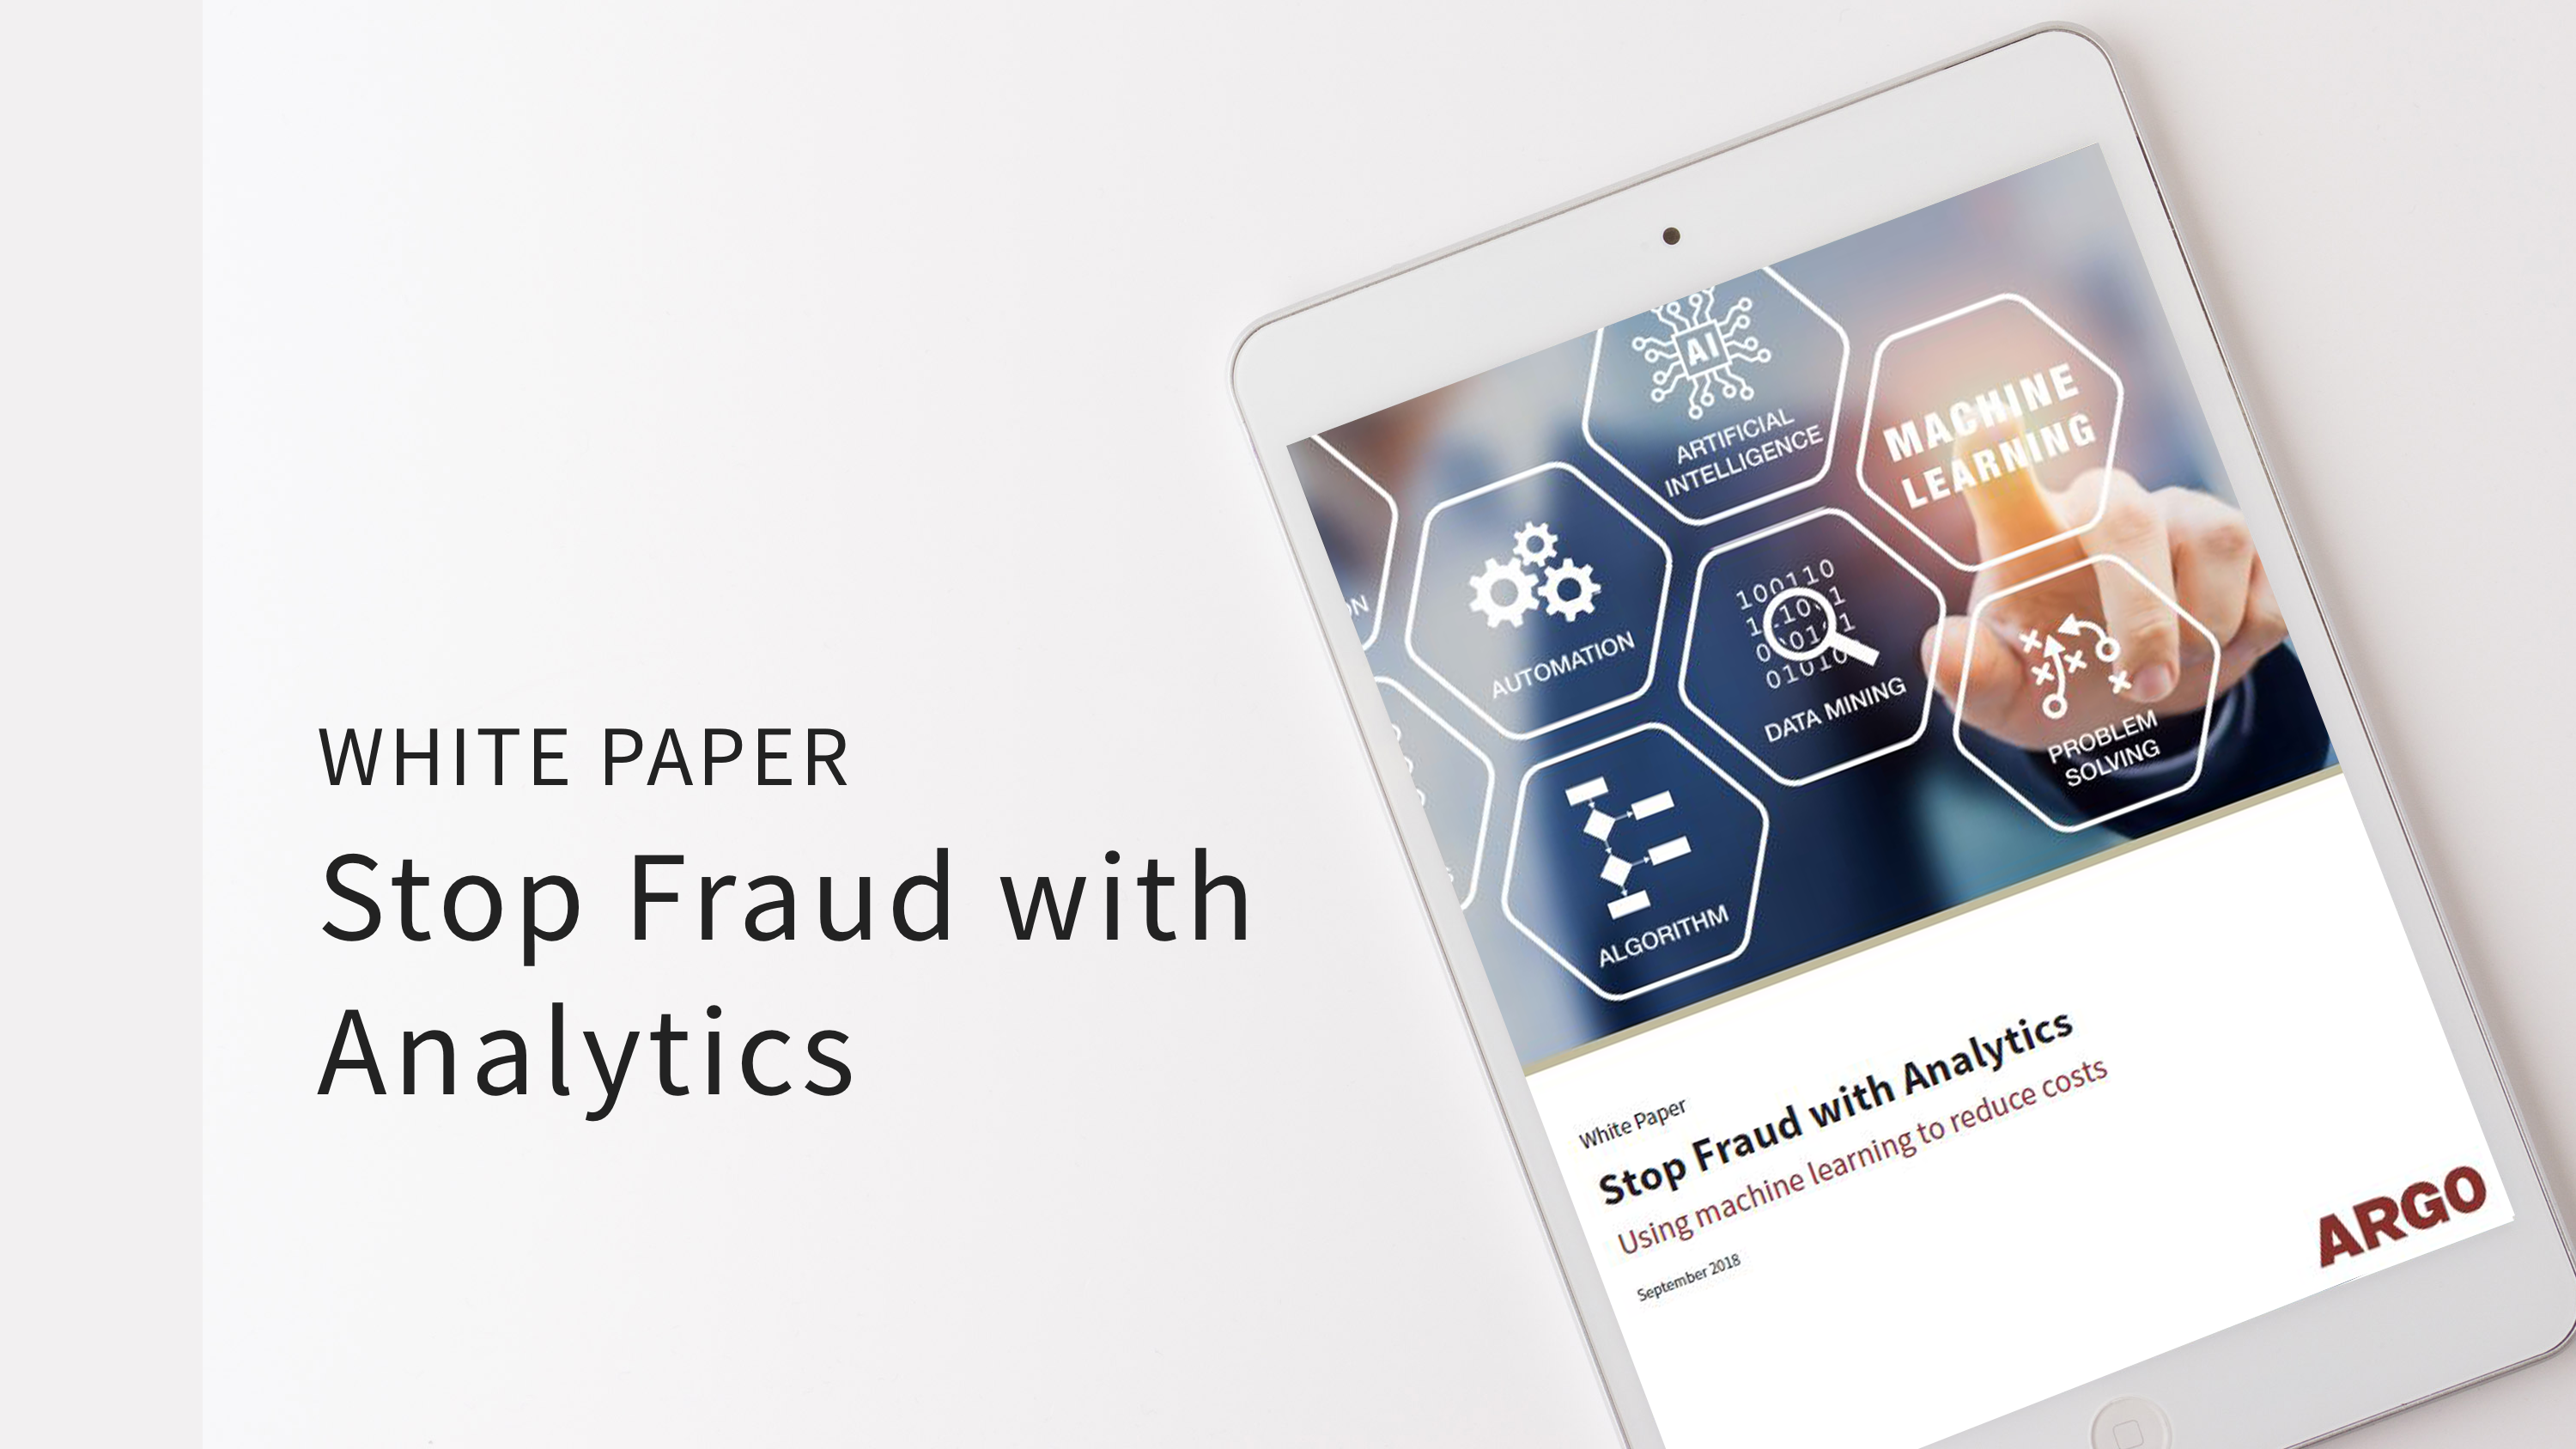 WP Stop Fraud with Analytics